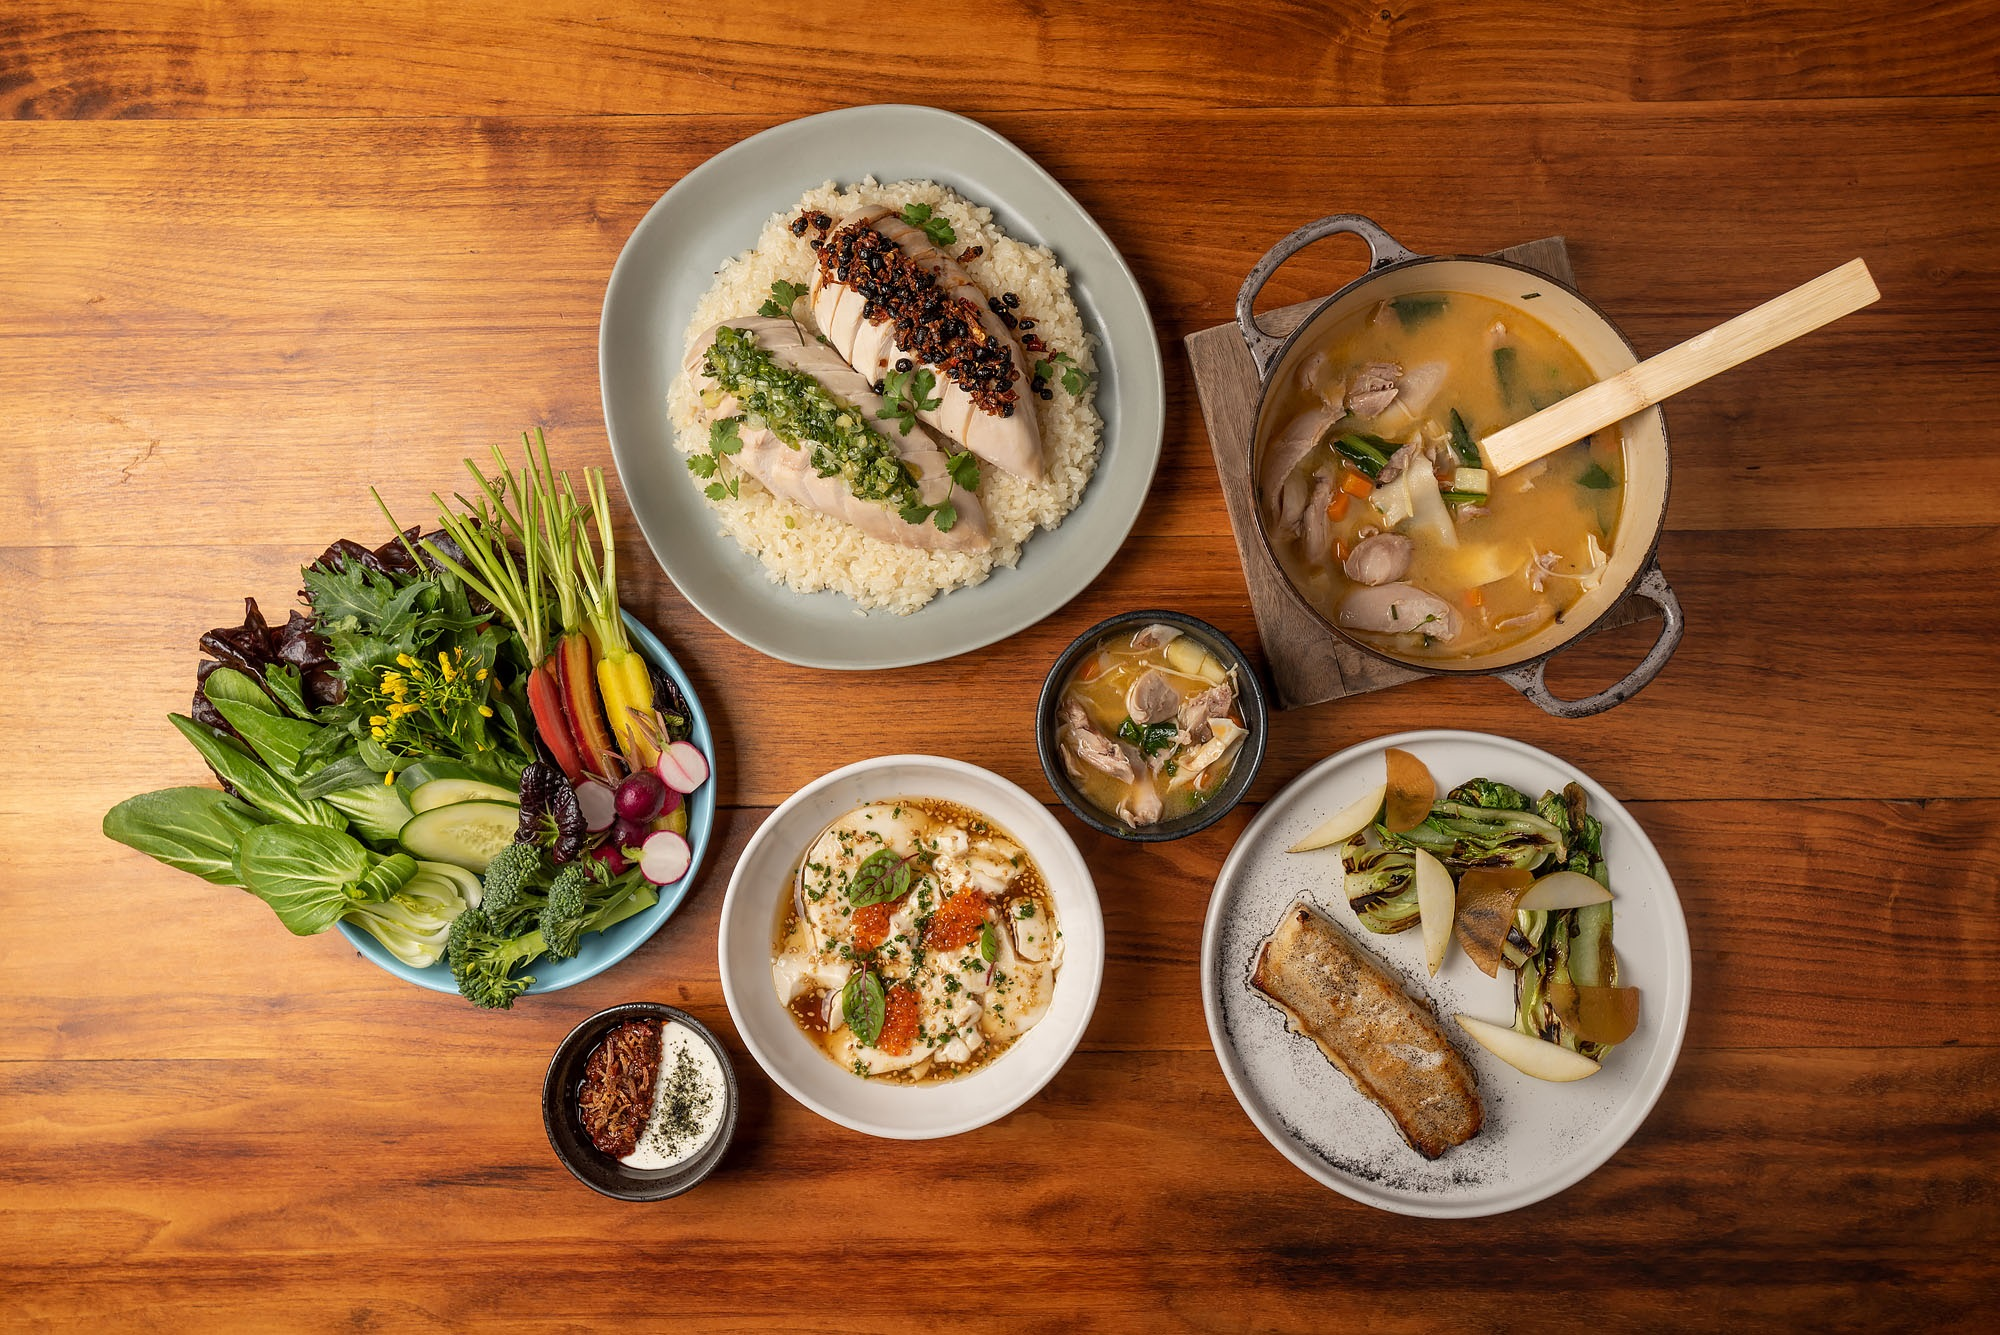 How to Maximize Your Order at Majordomo, David Chang's Ode to Los Angeles Cuisine